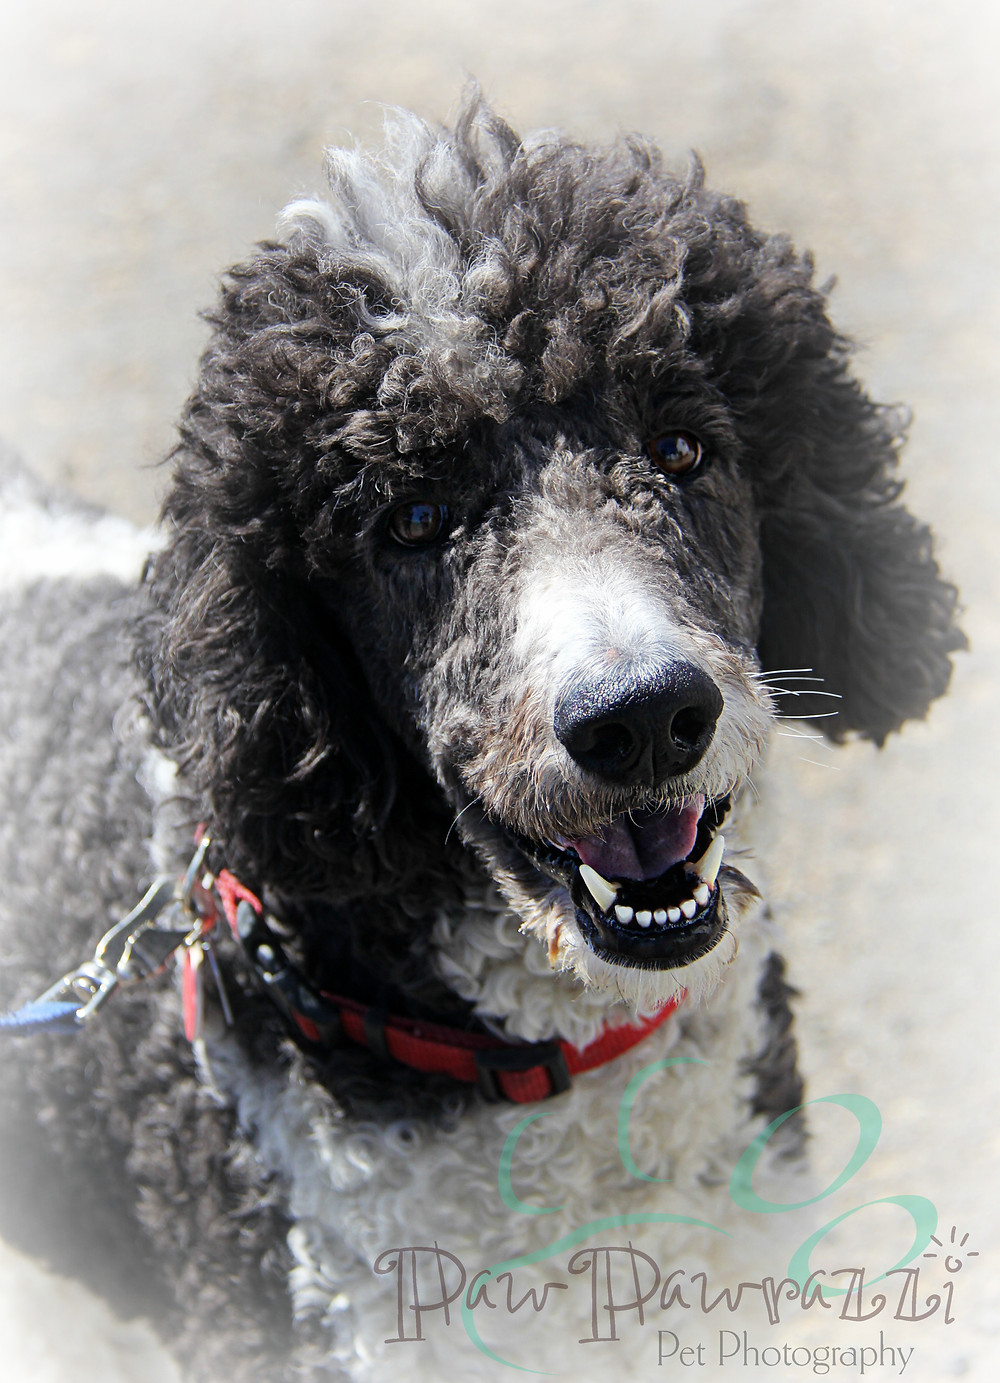 Party Poodle Bandit is all smiles!